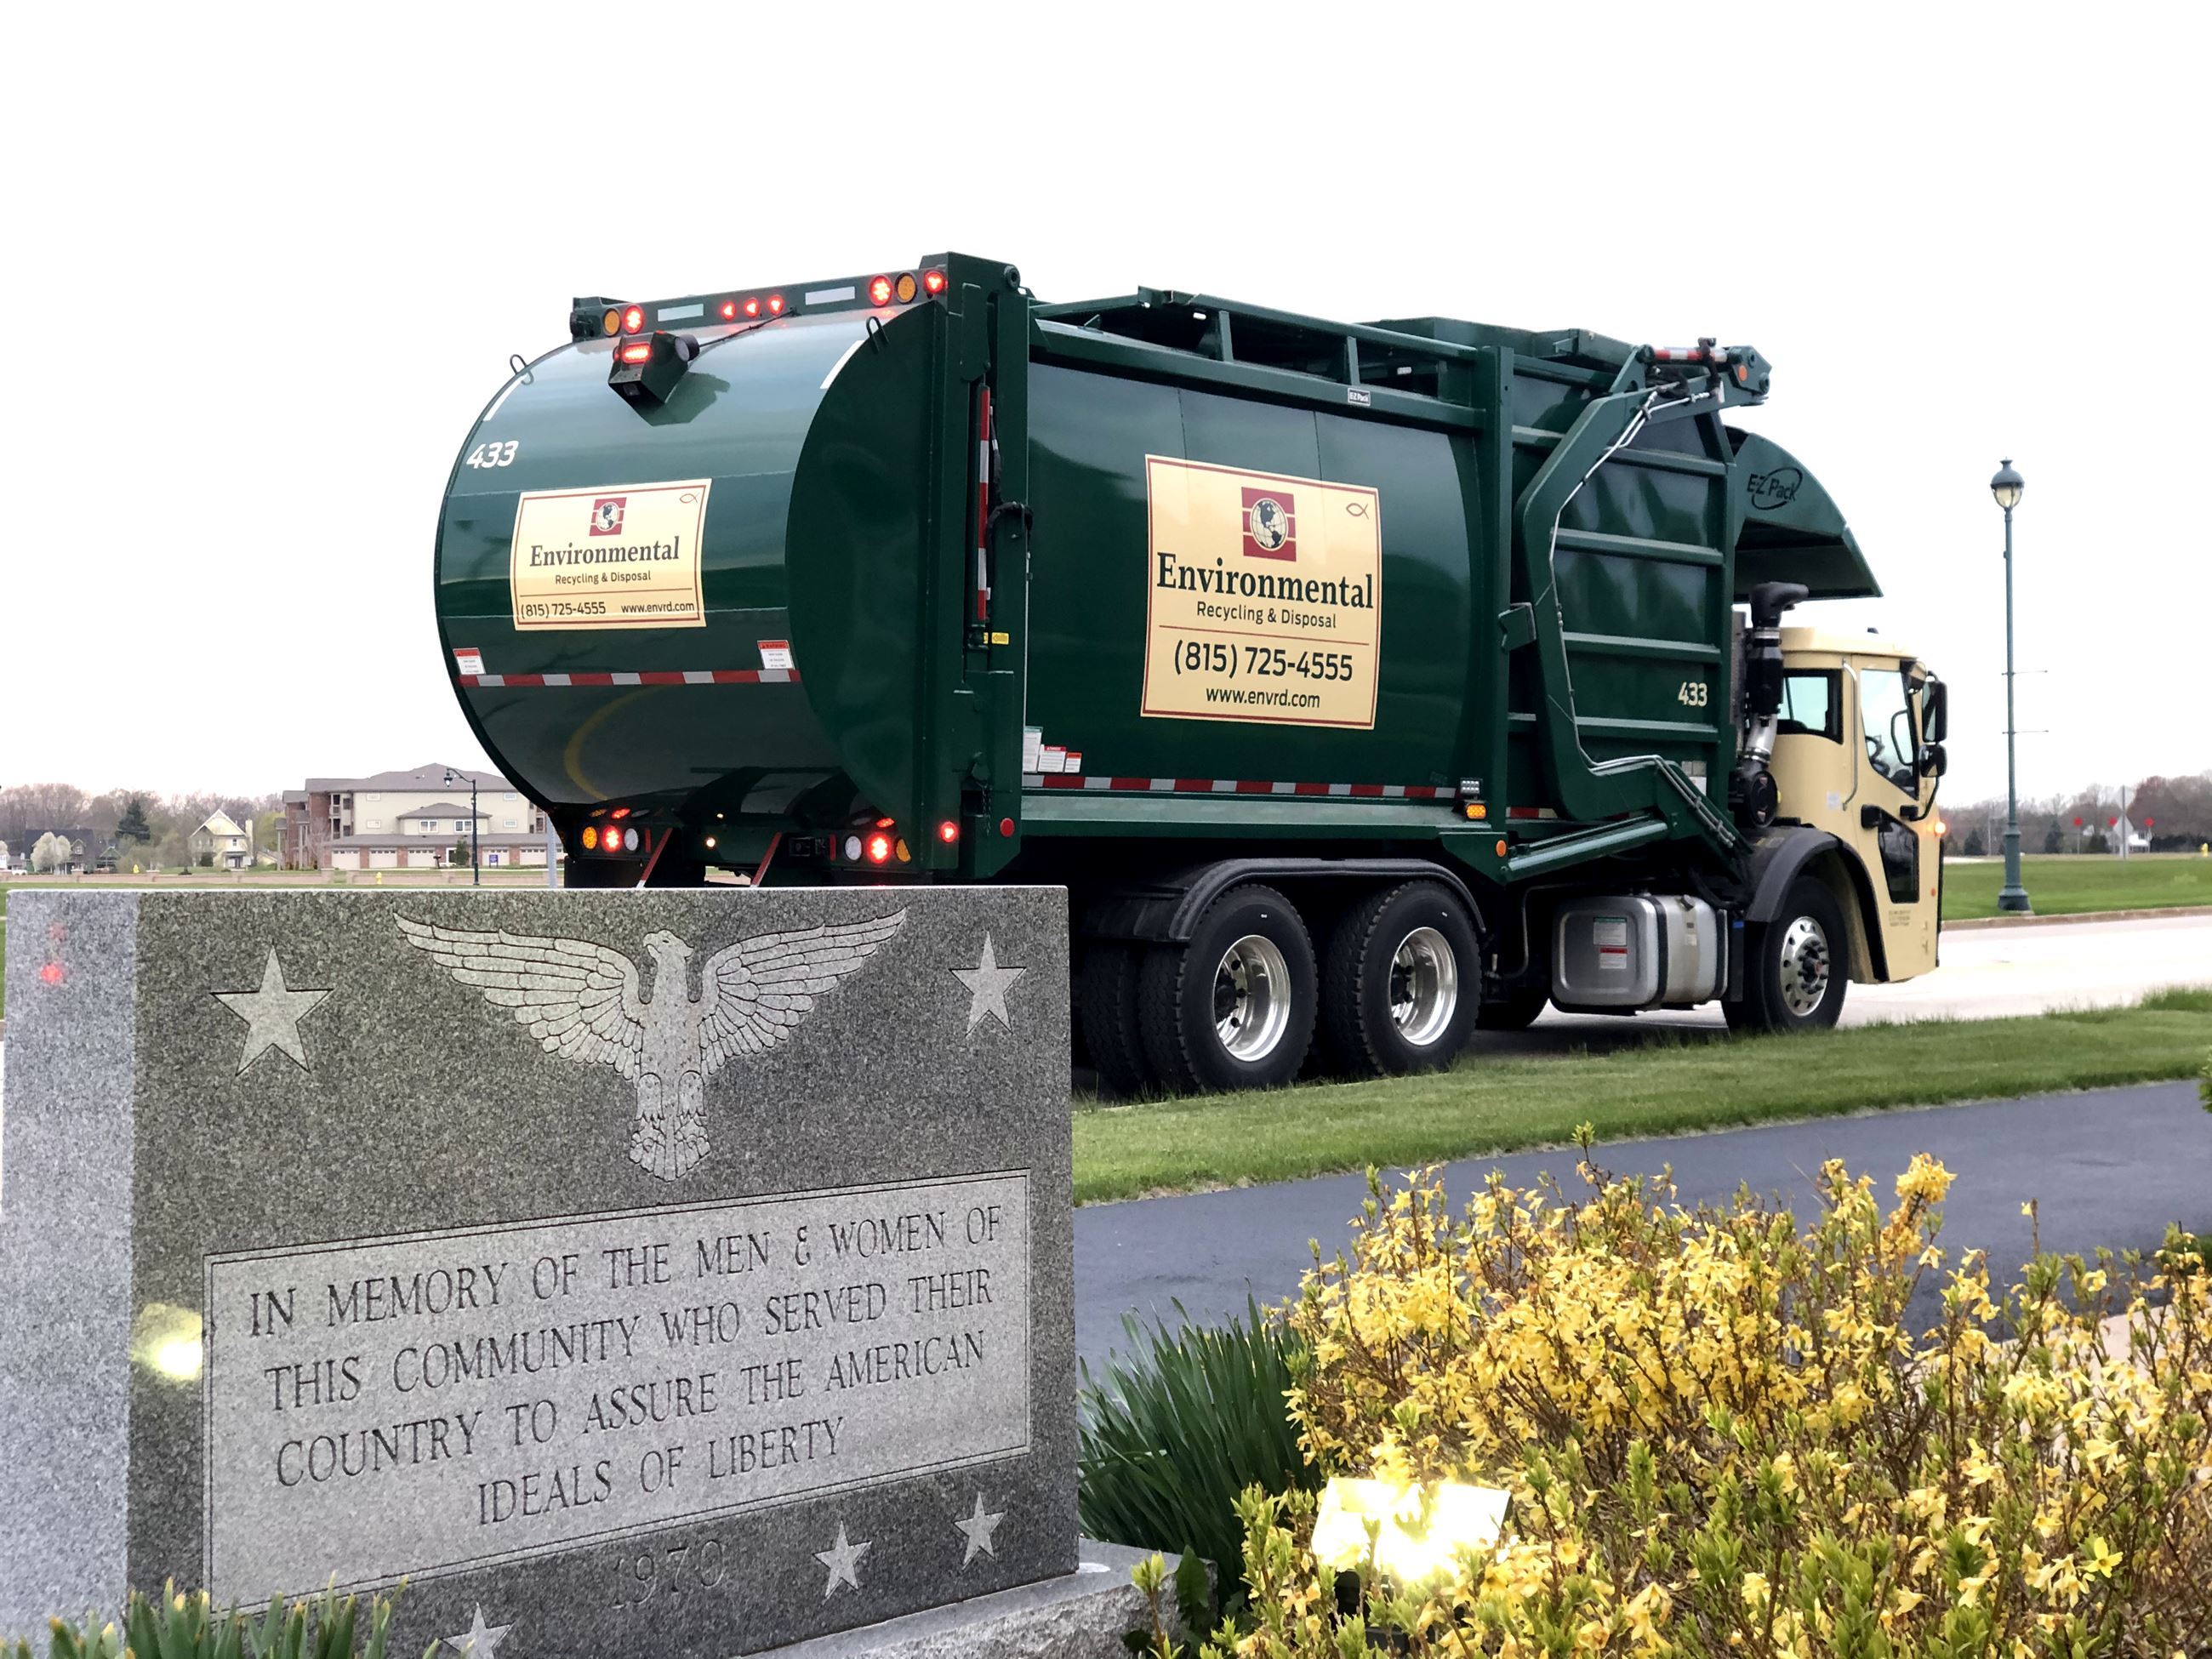 Photo of Environmental Recycling & Disposal truck in front of Village Hall